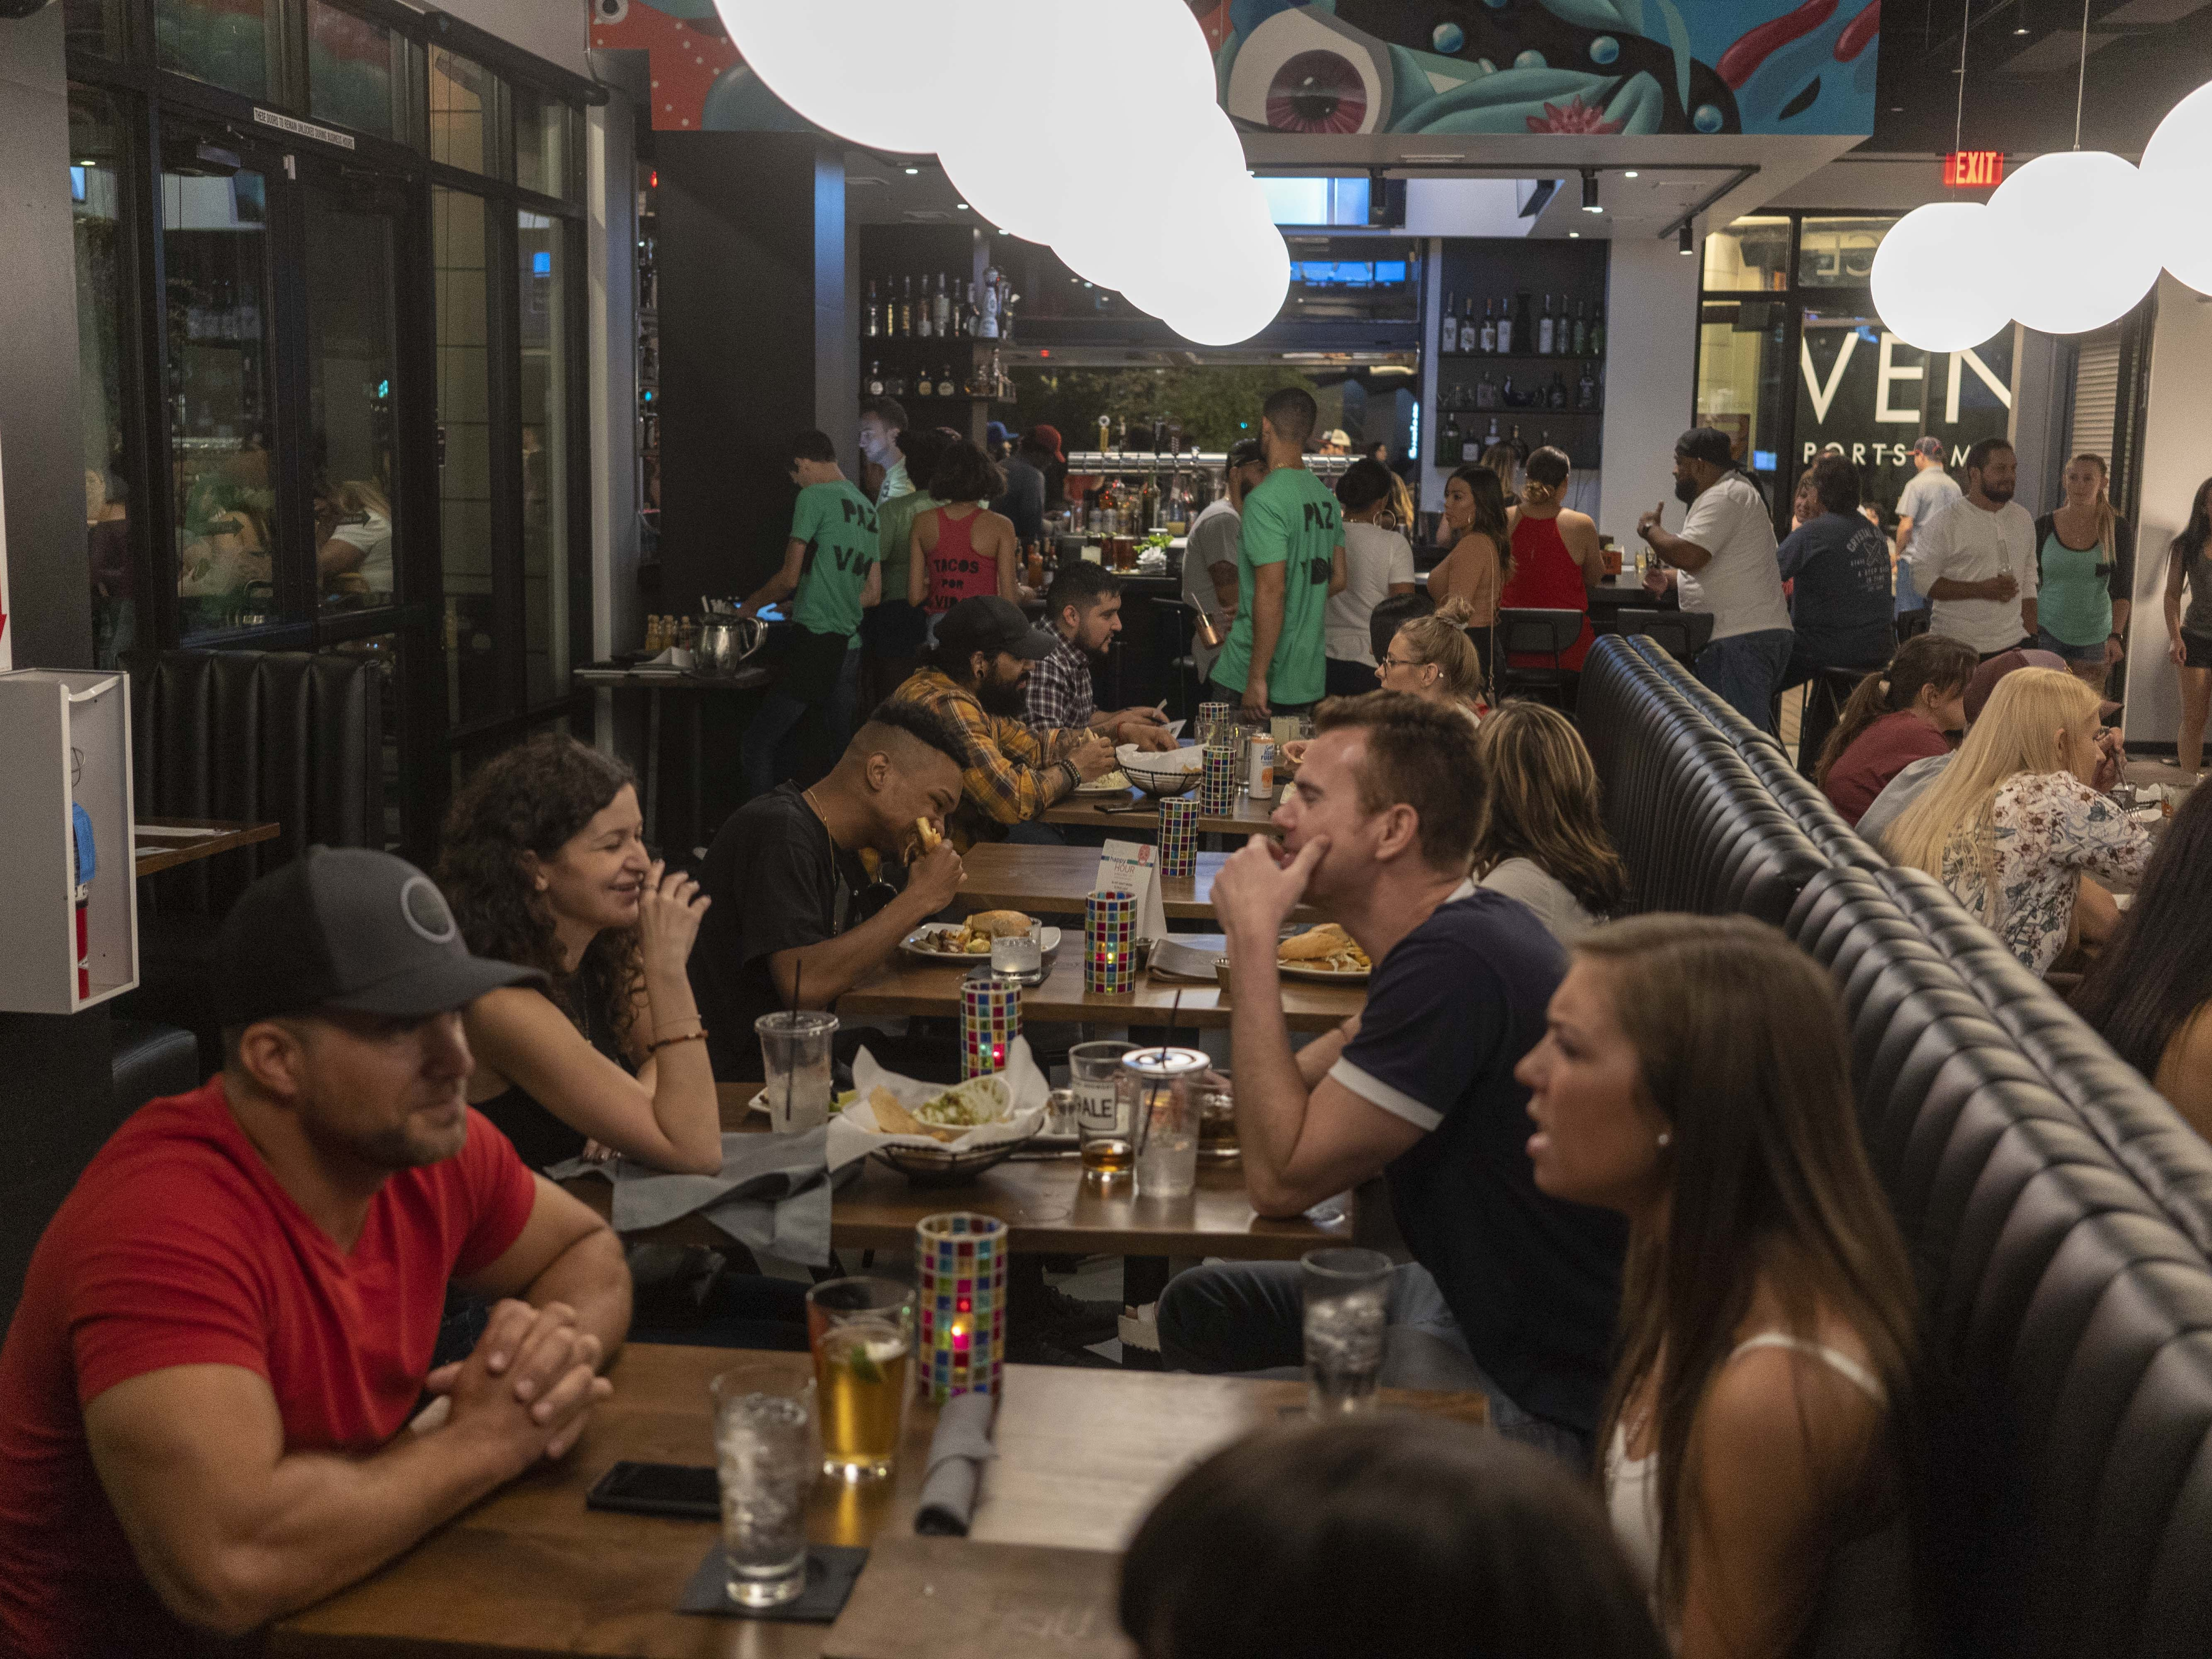 People enjoy food at PAZ during the First Friday Art walk, Roosevelt Street in Downtown Phoenix, on Oct. 5, 2018.